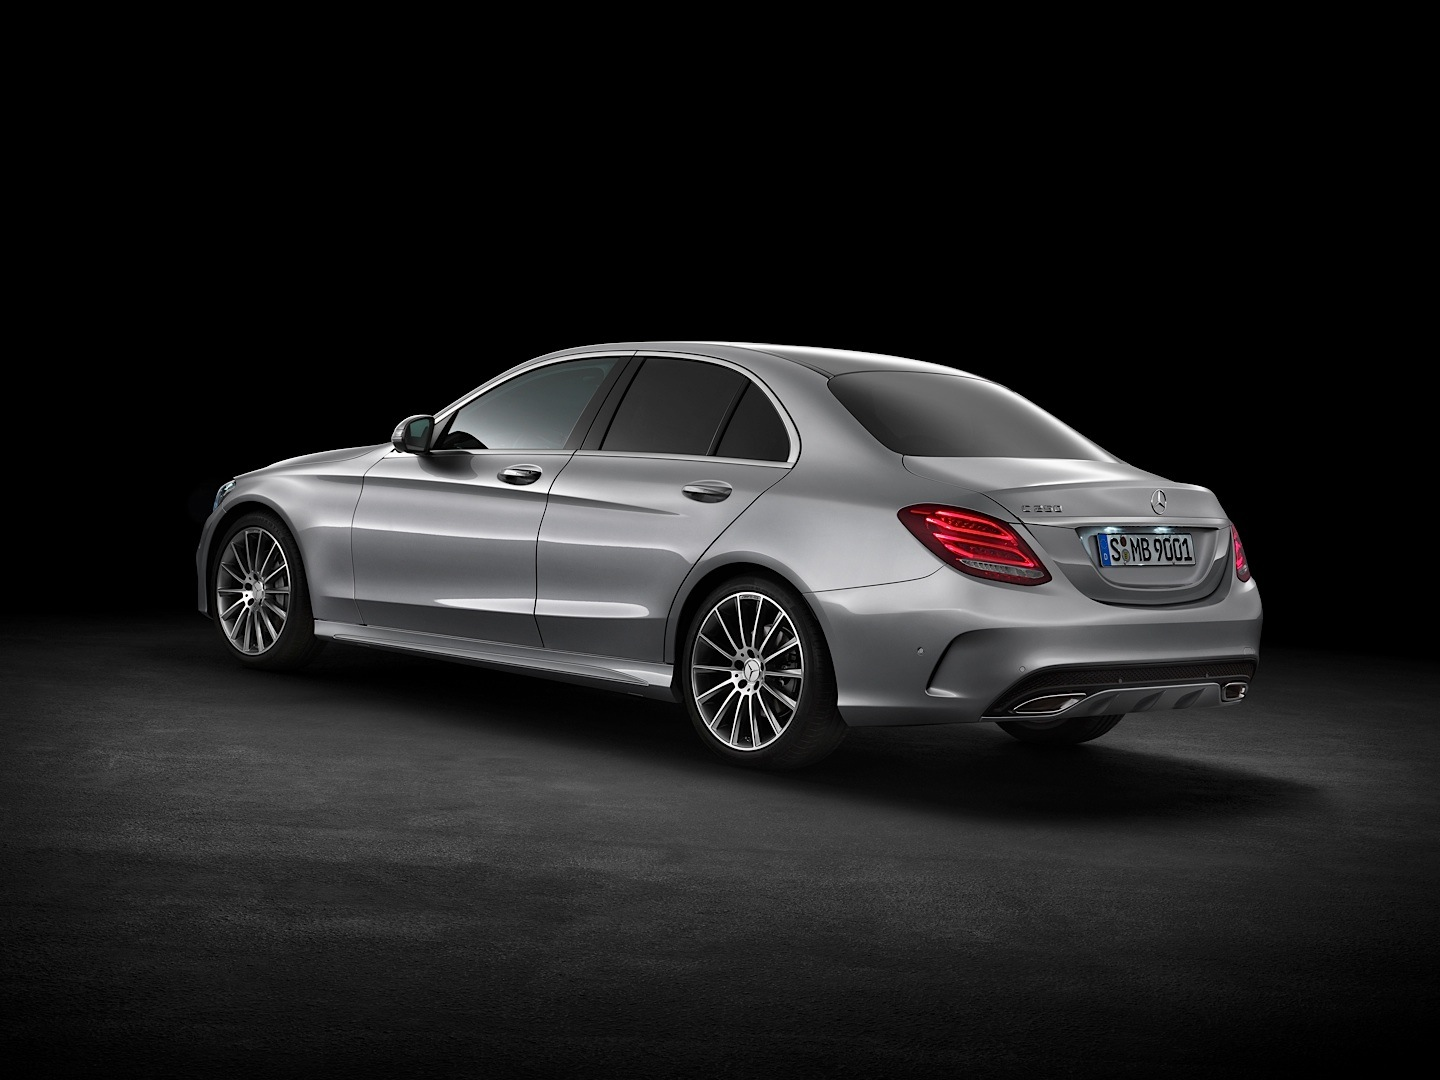 check-out-the-first-official-footage-with-the-new-c-class-w205-video-1080p-23